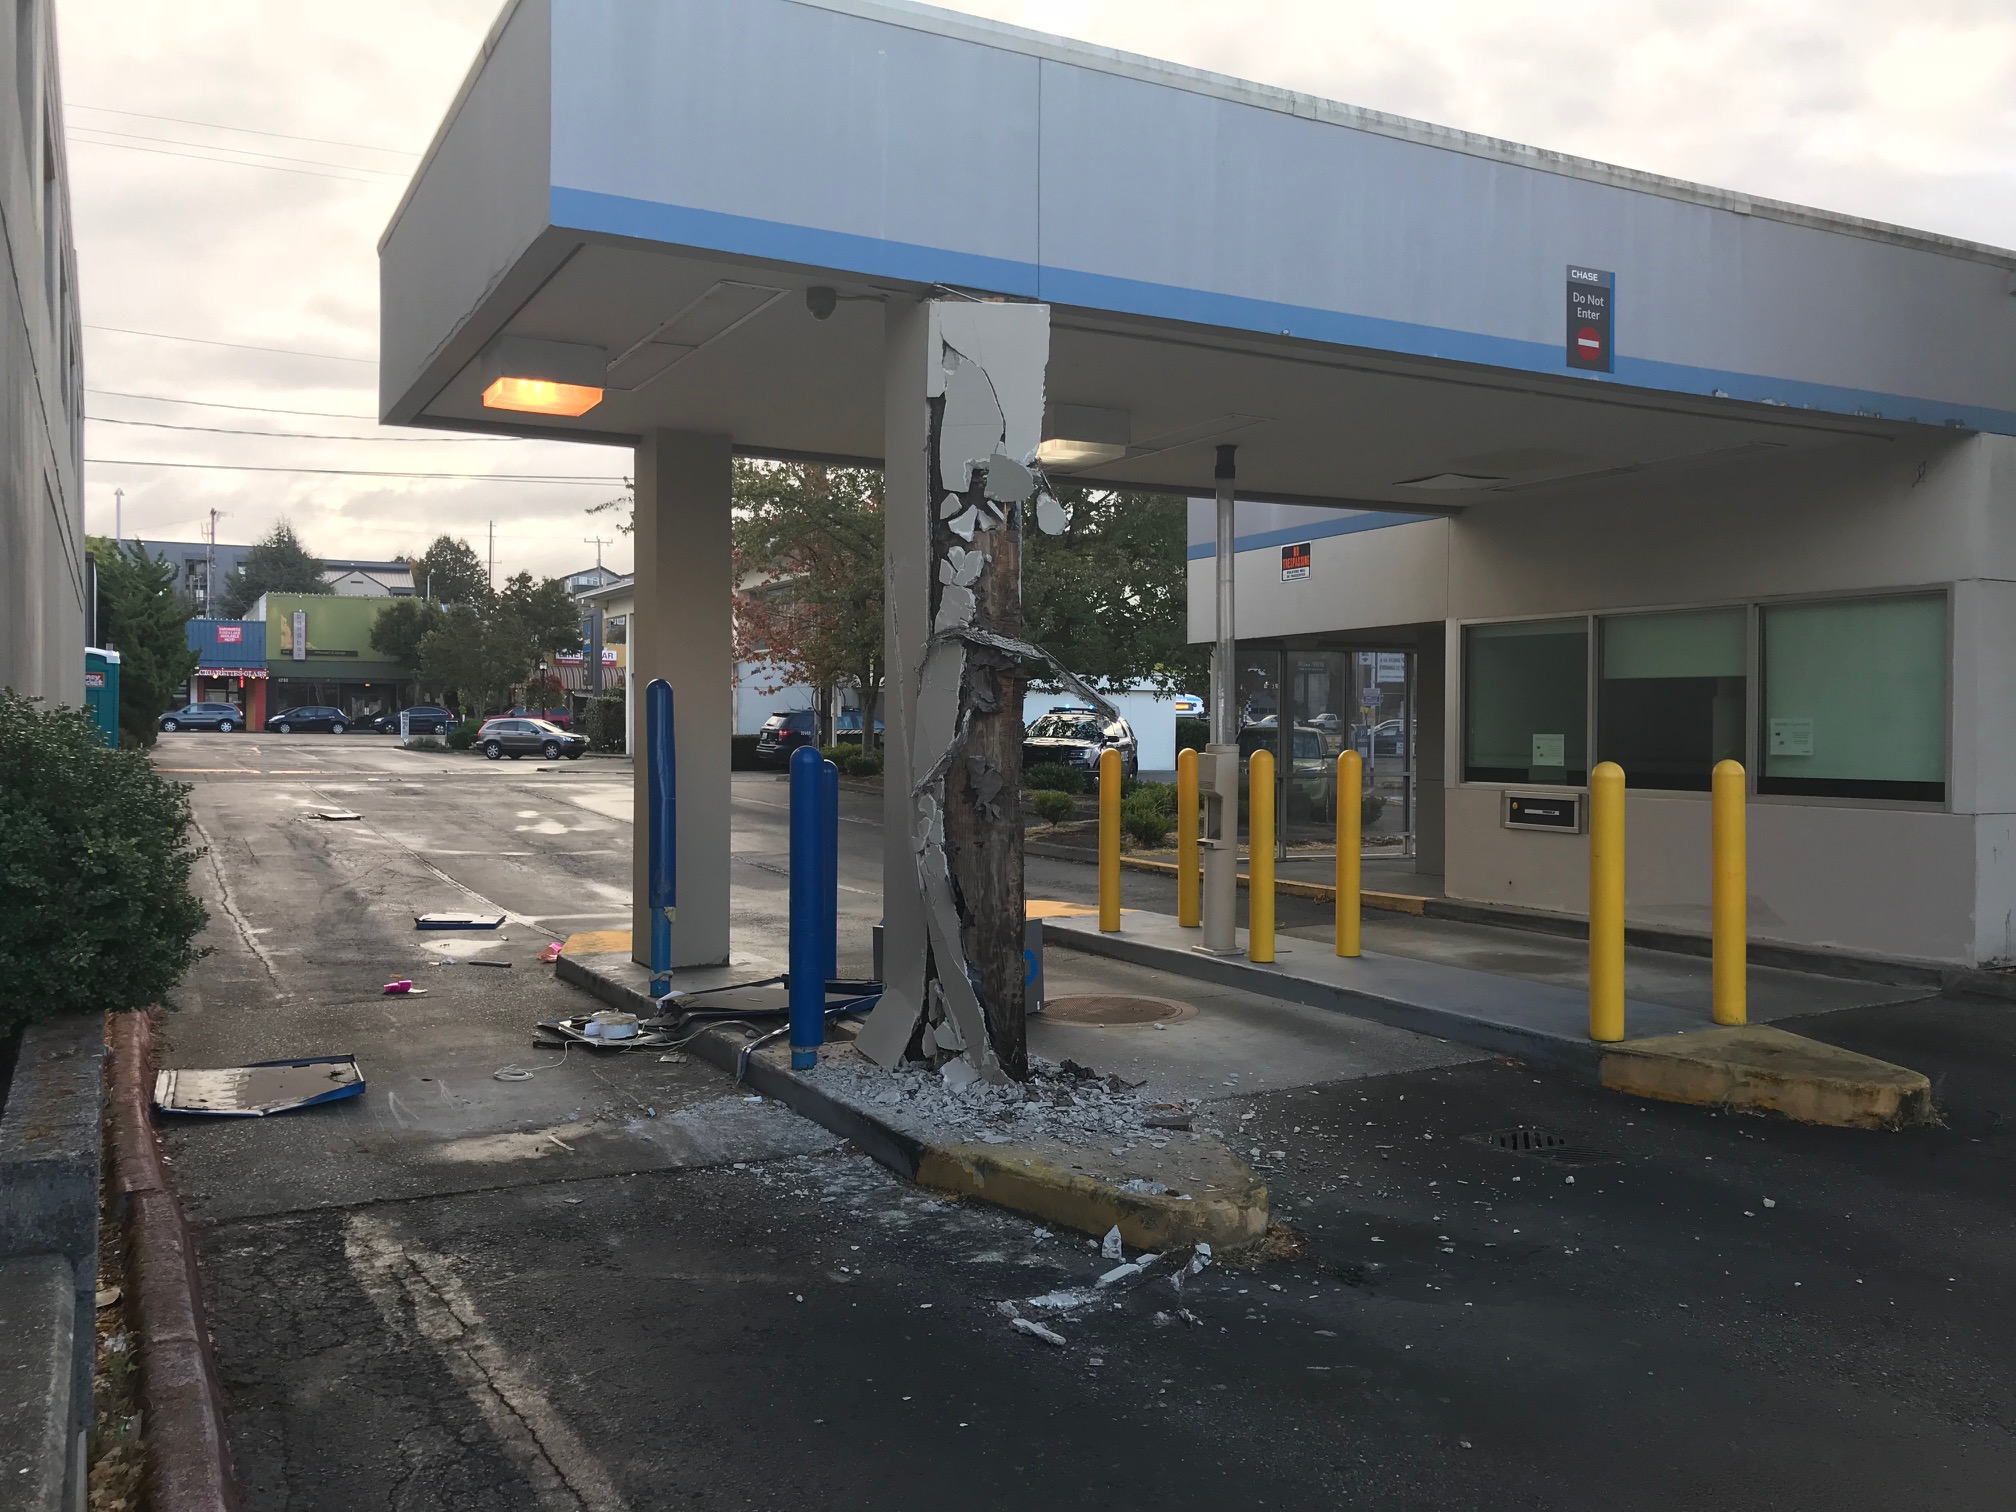 WEST SEATTLE CRIME WATCH: Junction Chase drive-up ATM stolen